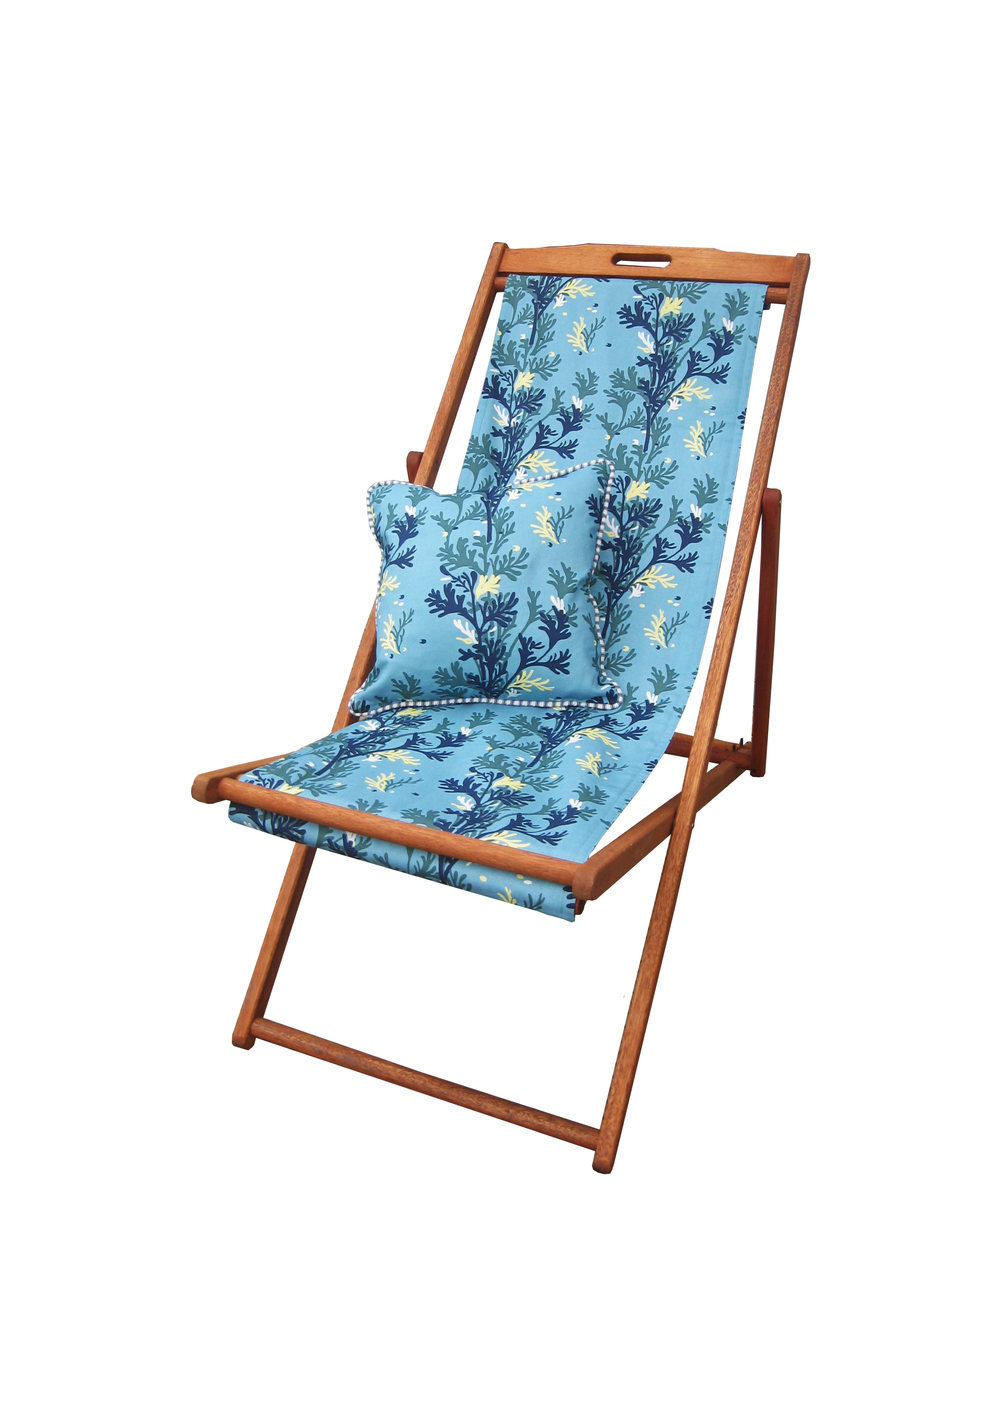 deckchair in seaweed blue fabric.jpg